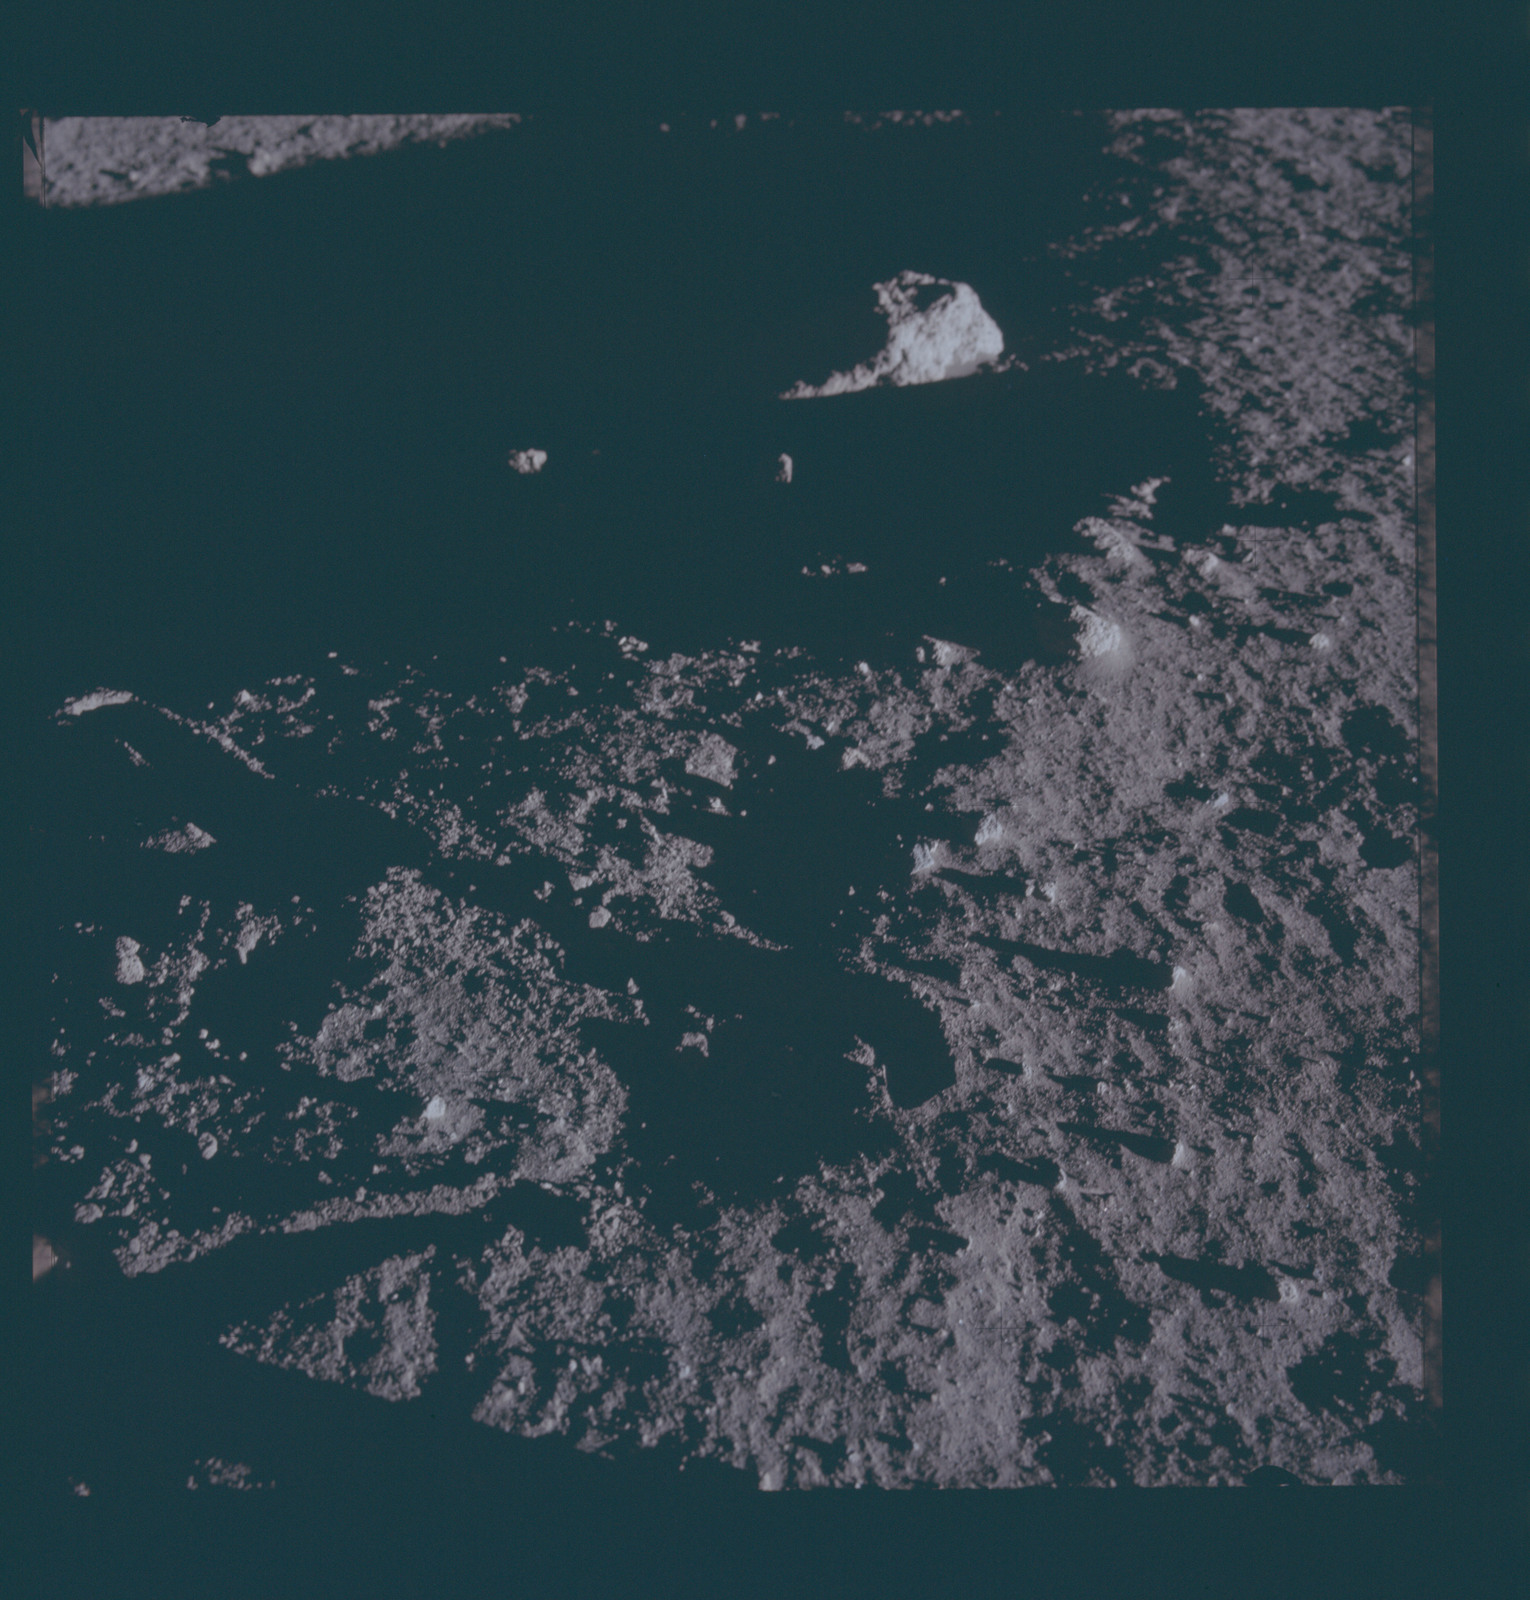 AS12-46-6720 - Apollo 12 - Apollo 12 Mission image  - View of the lunar surface